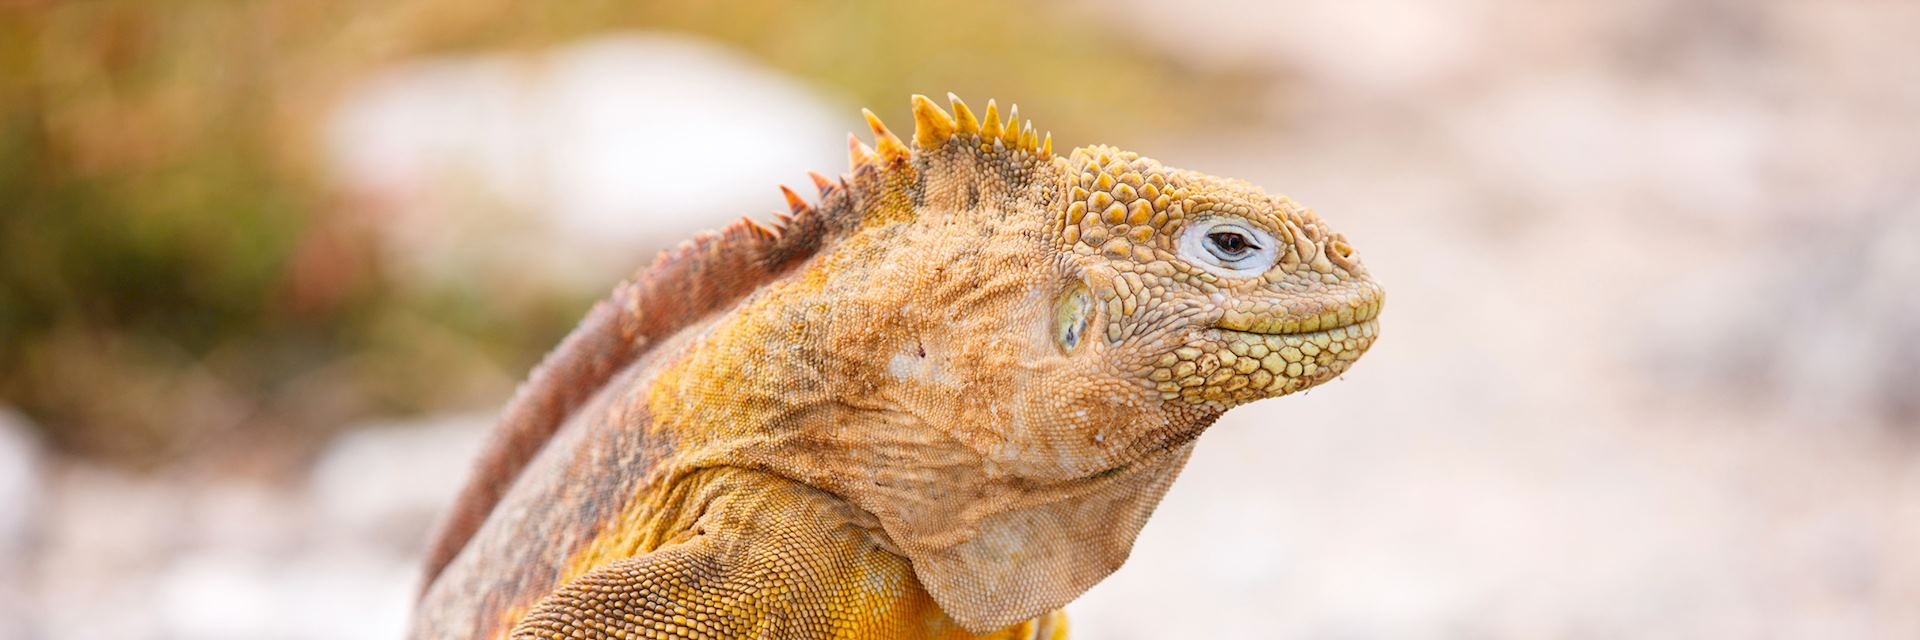 Land iguana, the Galapagos Islands